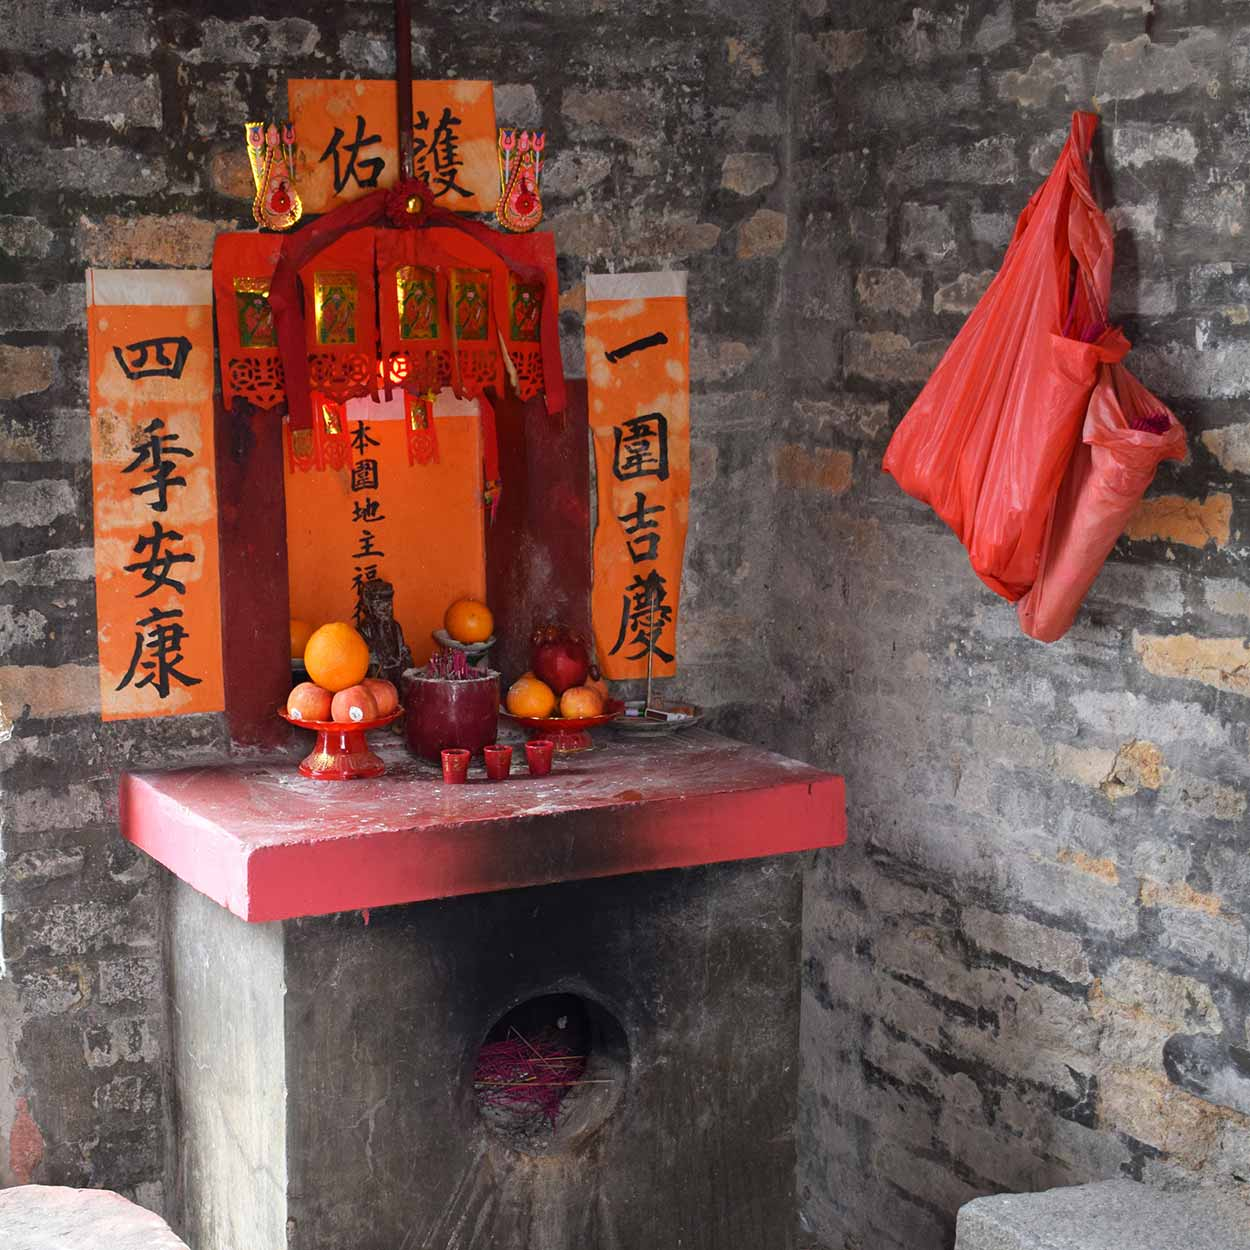 Shrine to the Earth God within the Tung Kok Wai entrance tower, Lung Yeuk Tau Heritage Trail, Hong Kong, China